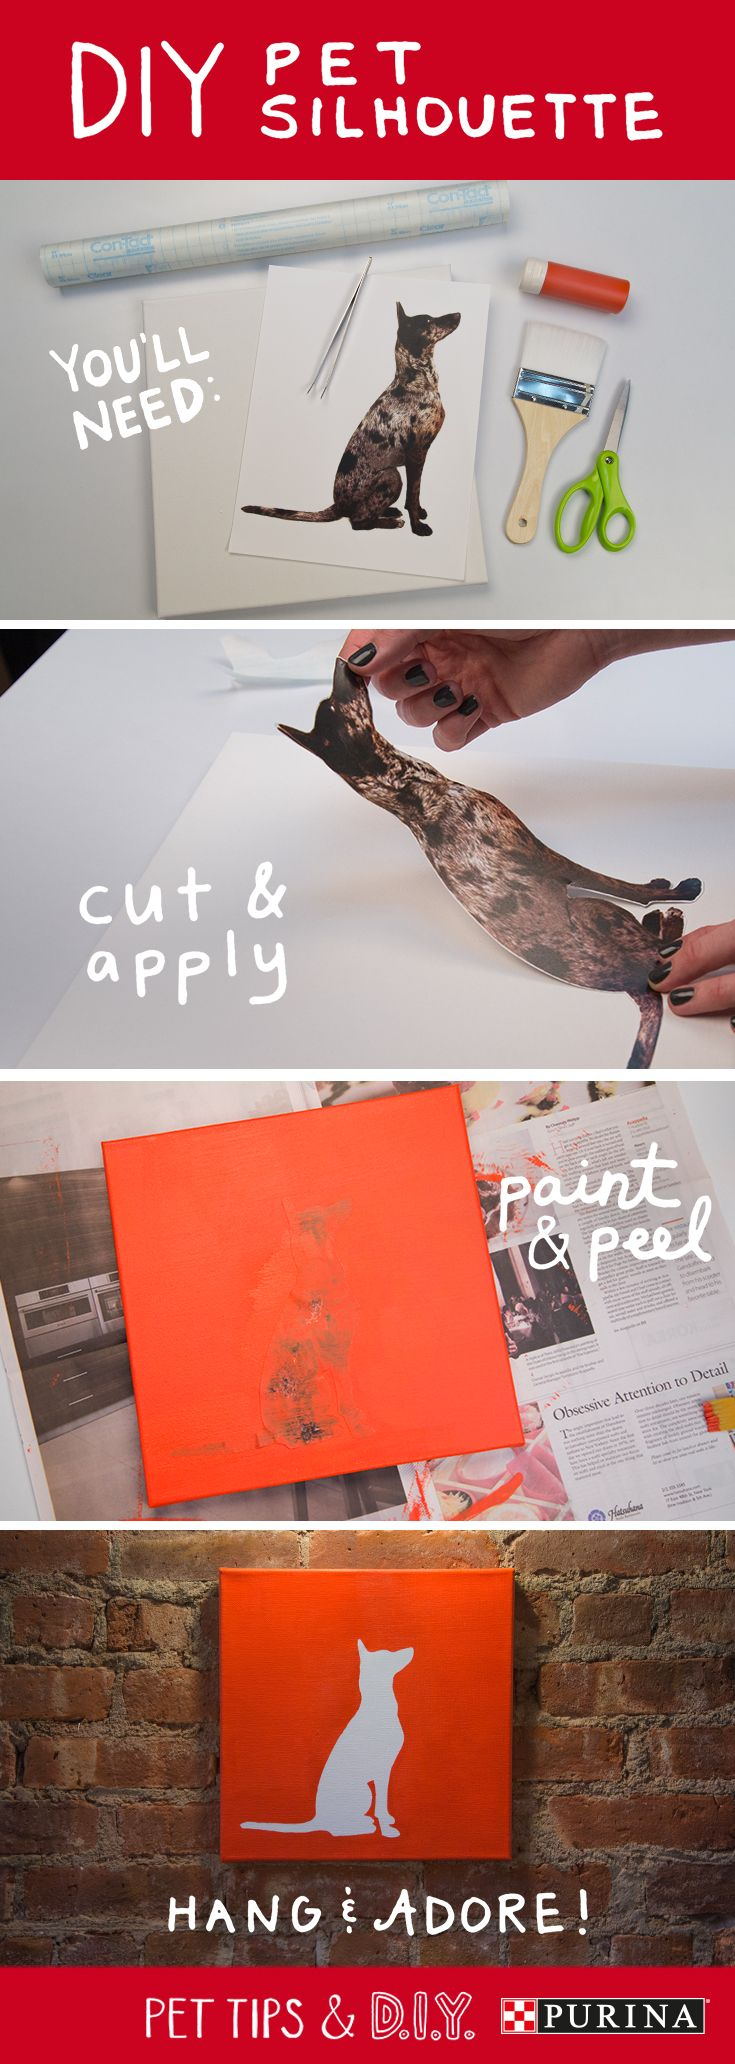 Here's a how-to guide for a DIY art project inspired by your pet. All you need is a canvas, printable label paper, paint and some imagination! #PetLifeHack